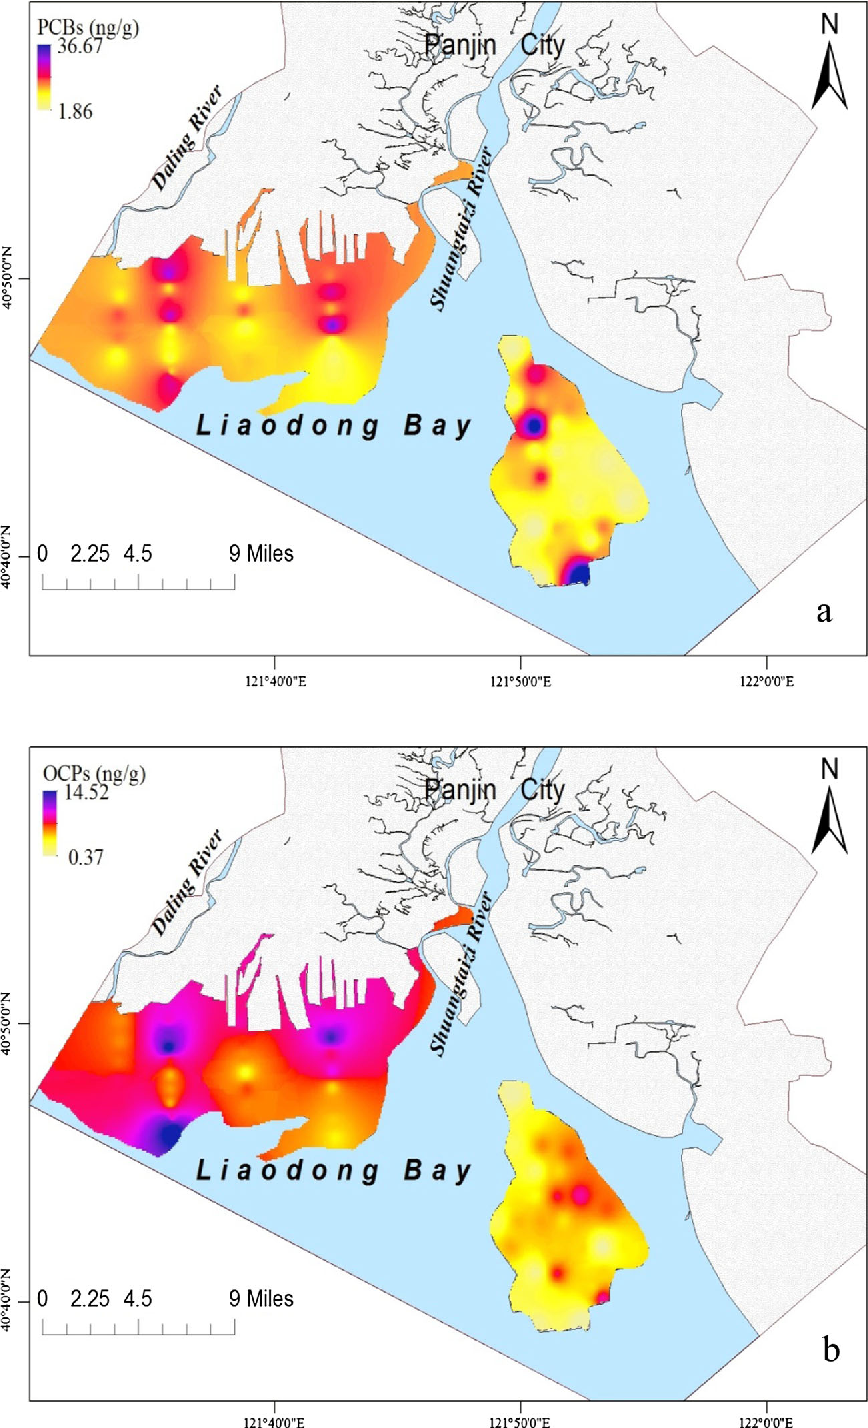 Fig. 3 Spatial distribution of PCBs (a) and OCPs (b) in surface sediments from sand flats of the Shuangtaizi Estuary